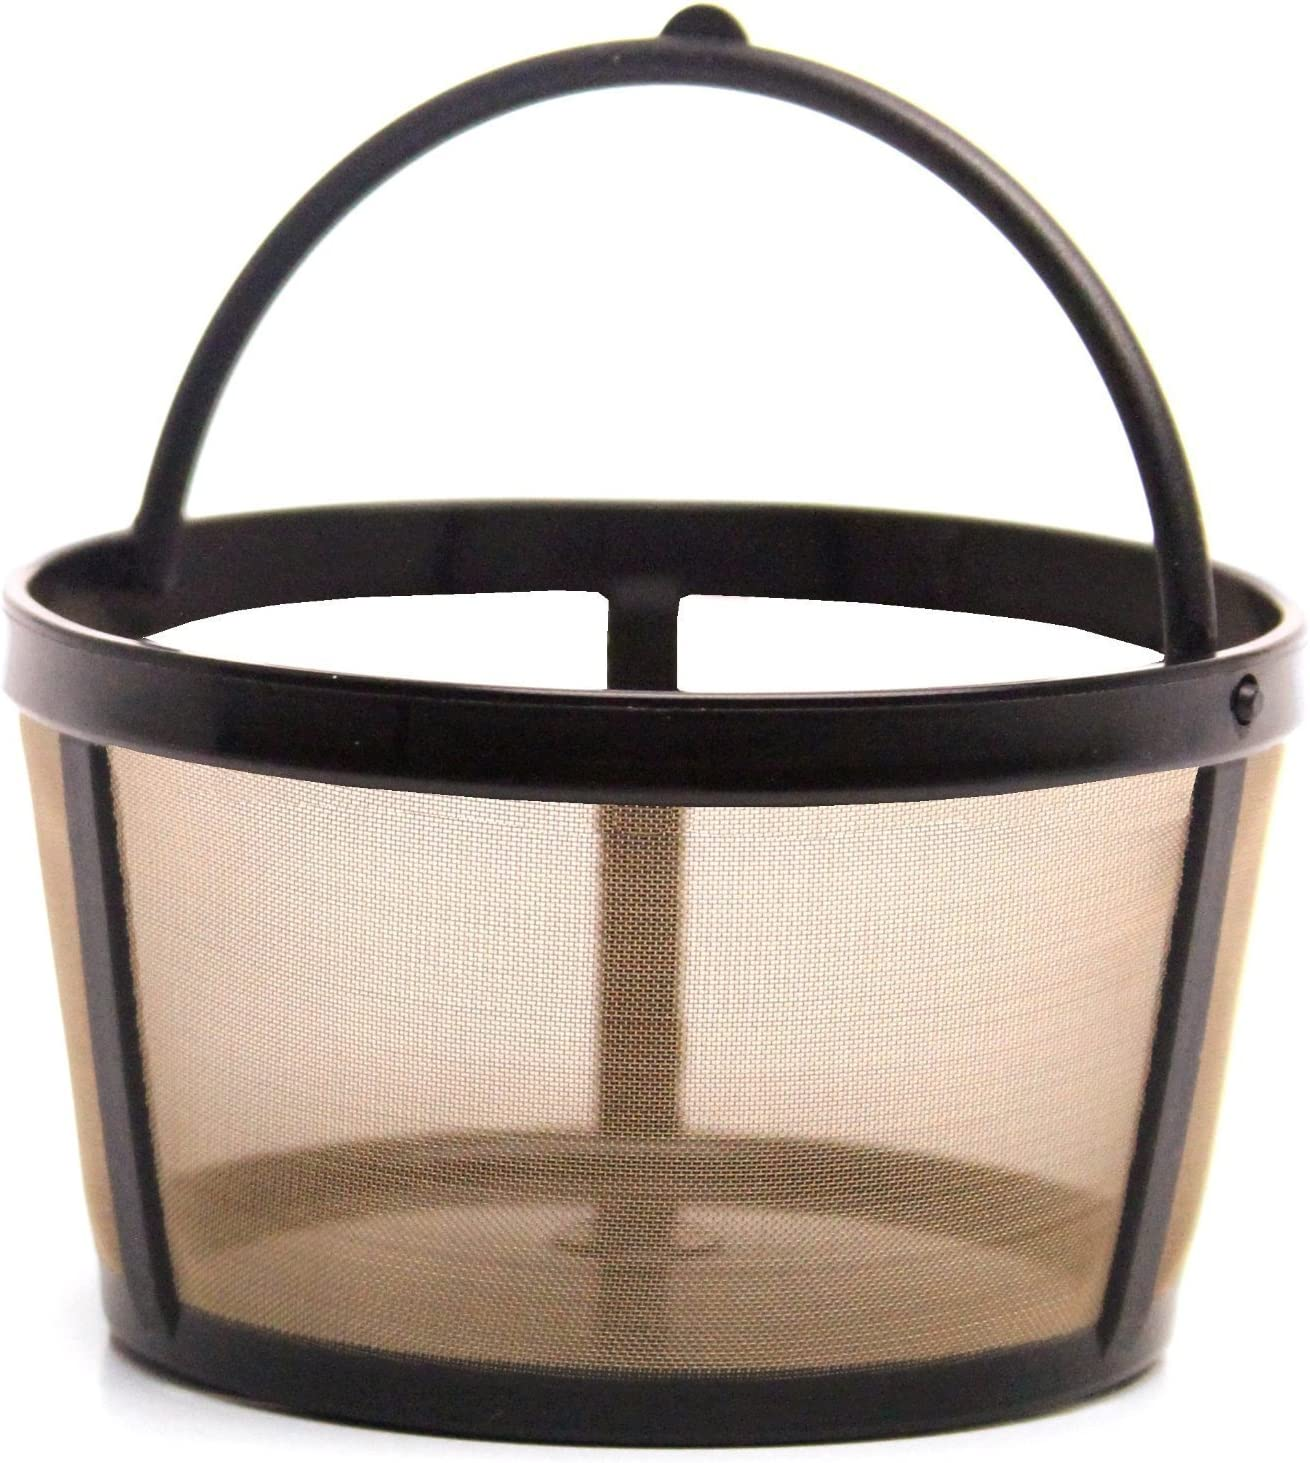 Gold Tone Products FBA-LG04 THE ORIGINAL GOLDTONE BRAND Reusable Basket-style 4-8 Cup Coffee Filter with Handle